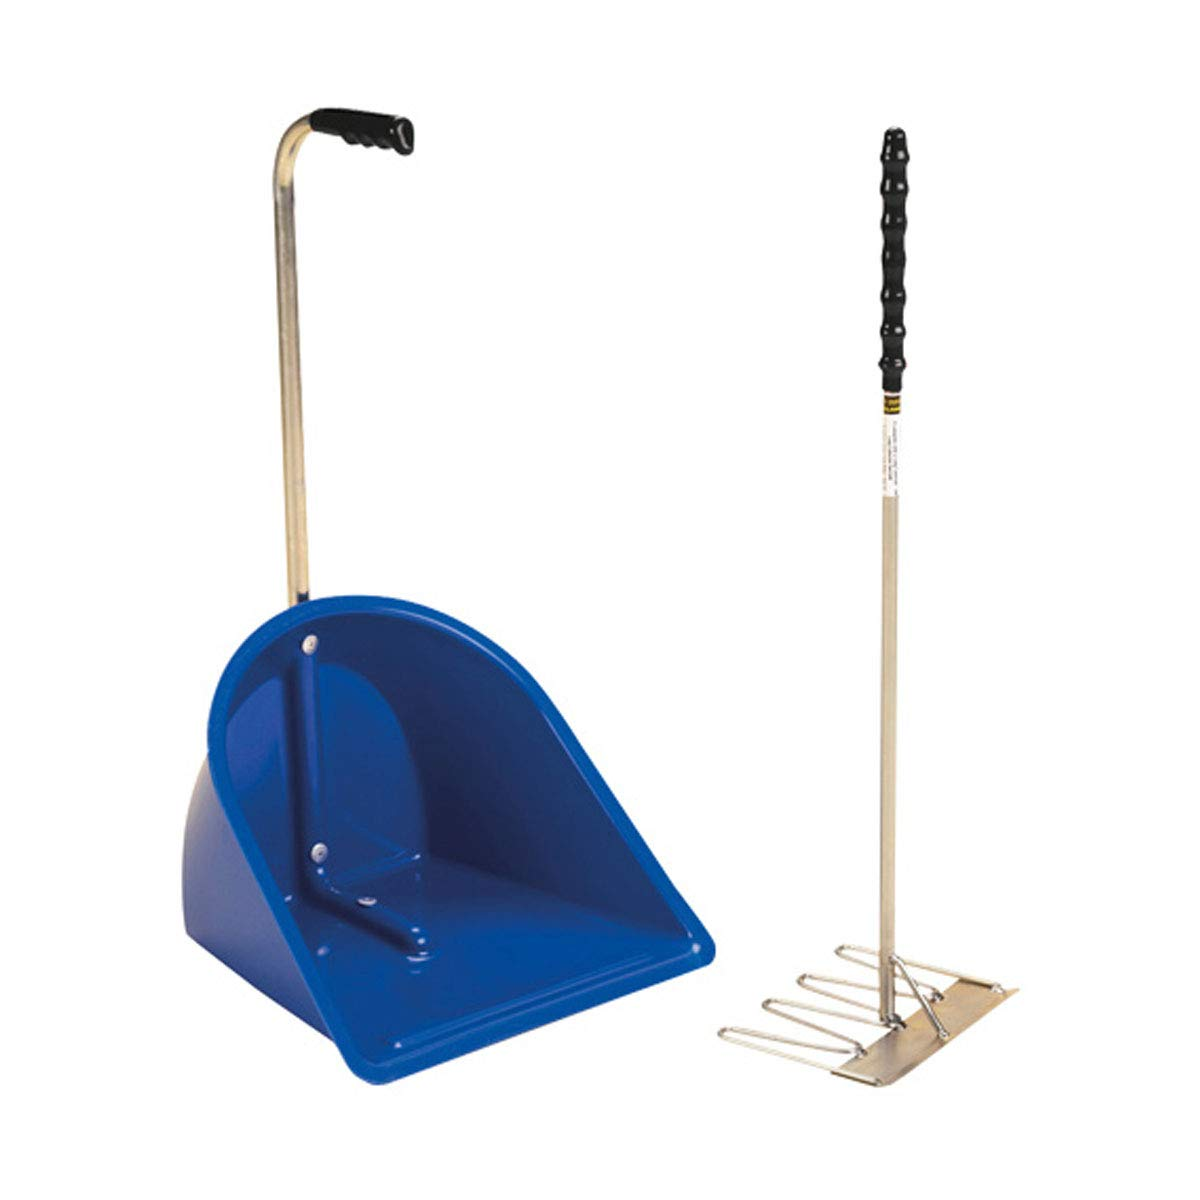 Stubbs Stable Mate Manure Collector (One Size) (Blue) by Stubbs